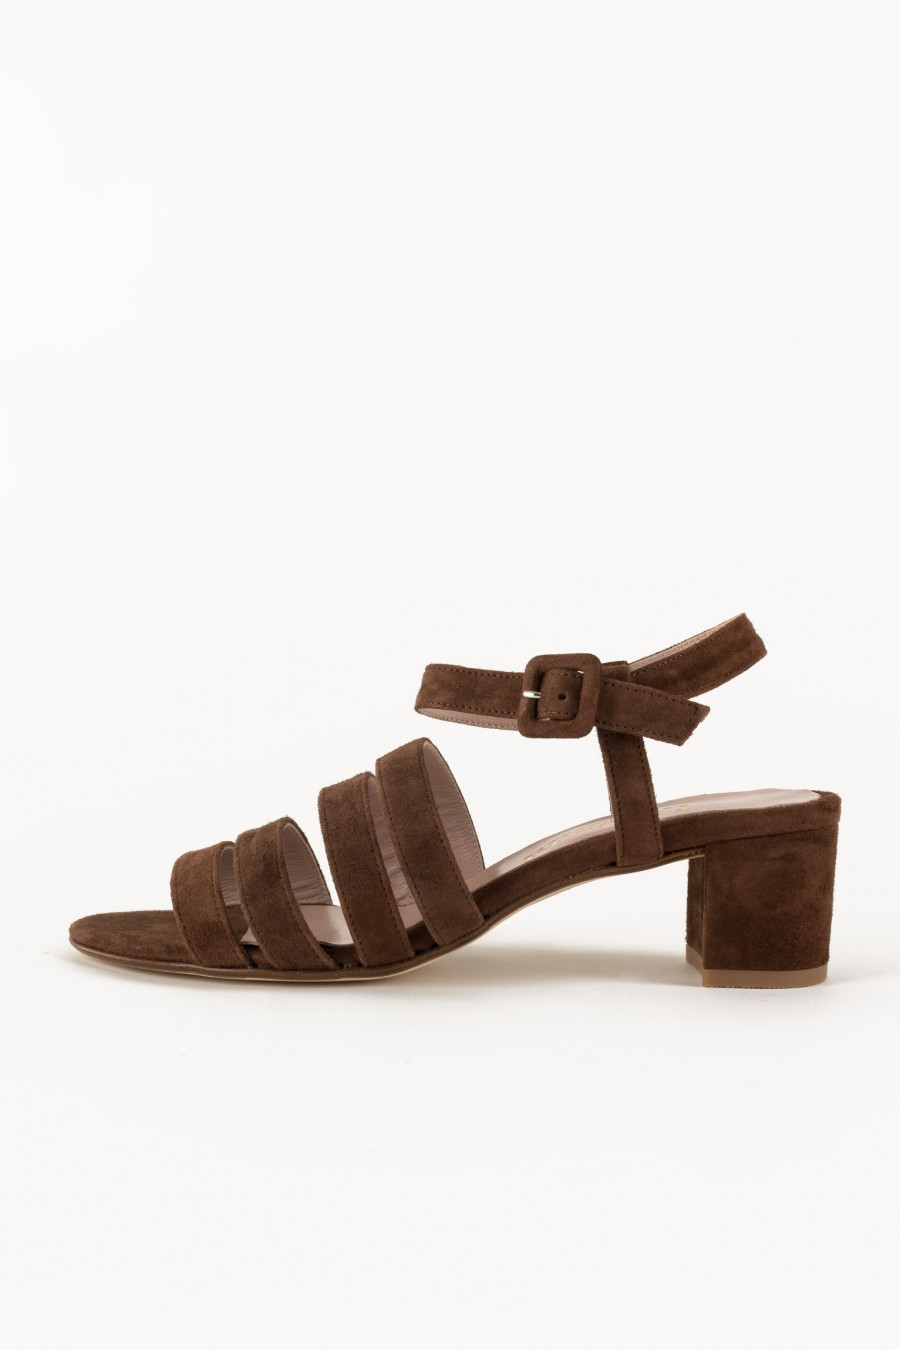 Brown heeled sandals